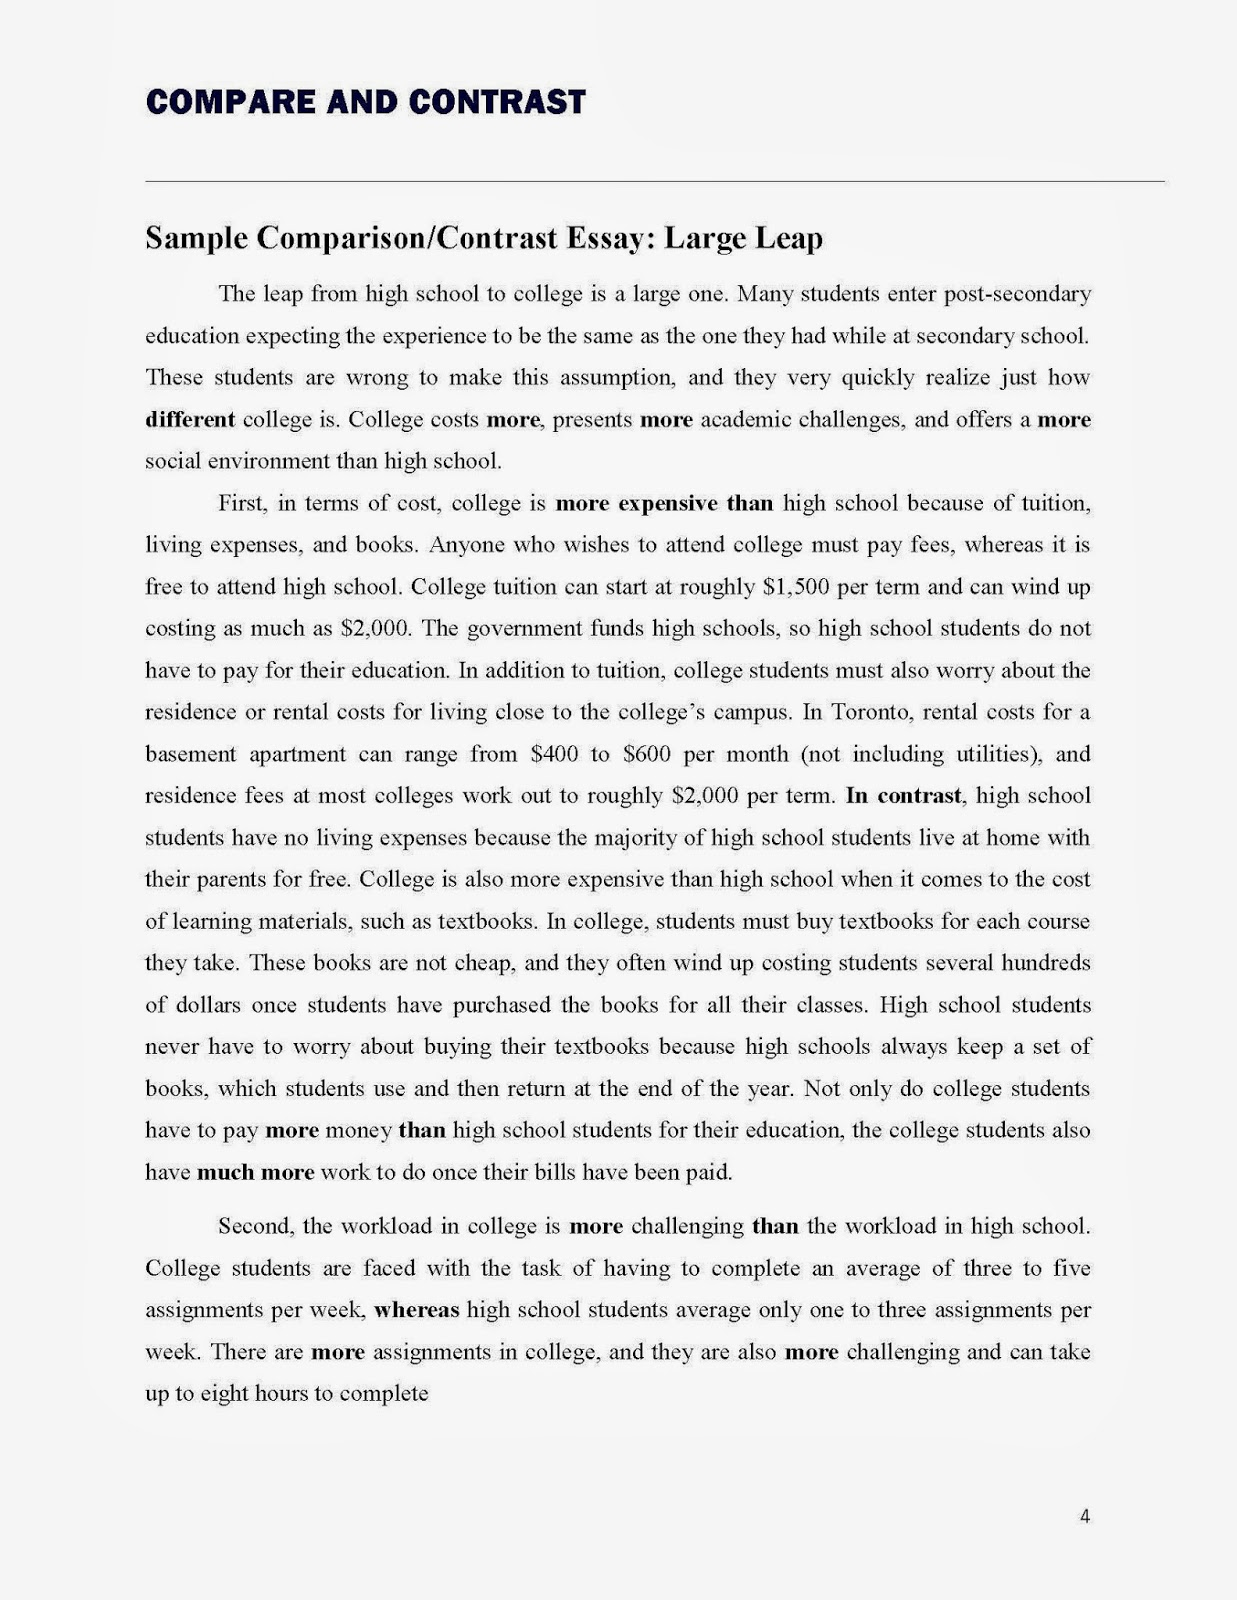 Arguementative Essay Compare Contrast Essay Prompts Compare Contrast Essay Writing Compare And Contrast  Essay Prompt Liao Ipnodns Rucompare Candy Essay also Person I Admire Essay A Compare Contrast Essay Compare Contrast Essay Prompts Compare  Analytical Essays Examples